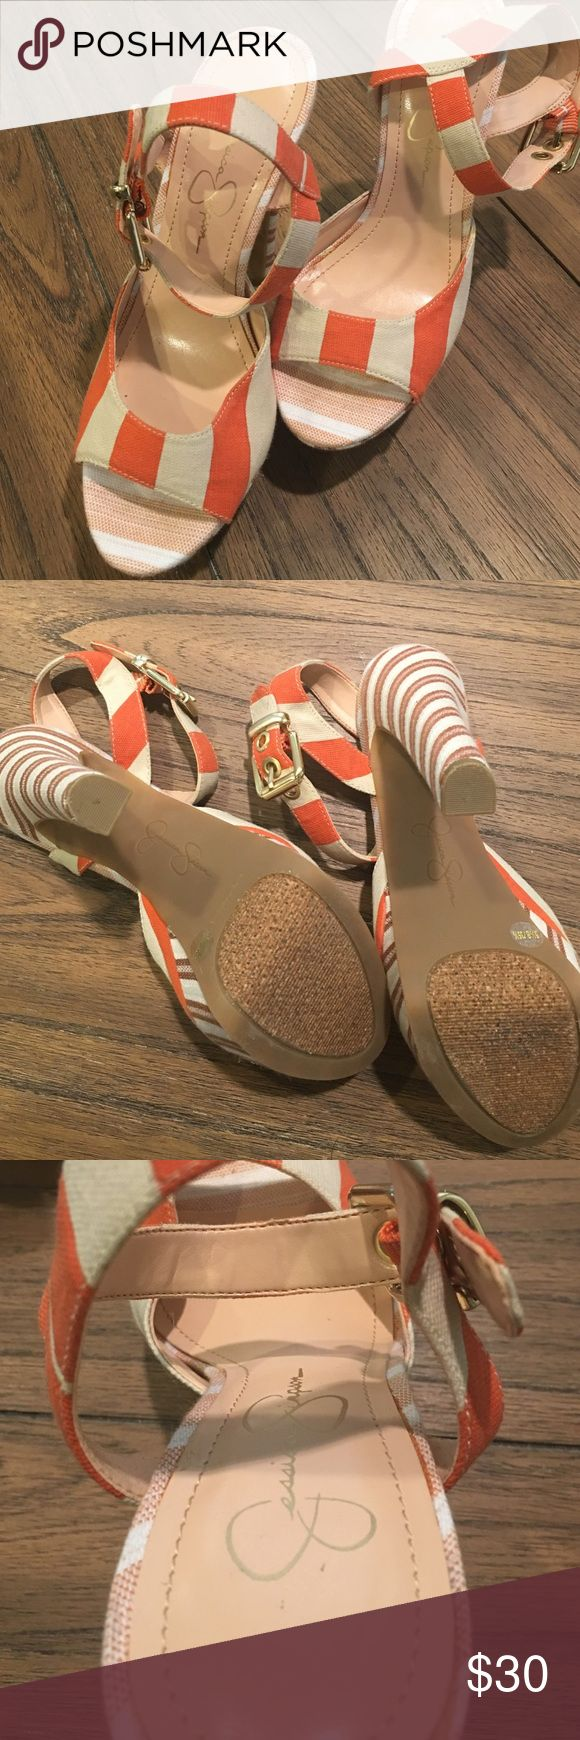 Jessica Simpson peep toe strappy heels Size 5.5: Orange and cream striped peep toe heels! Worn it once for a wedding. LOOKS BRAND NEW! Soles are in great condition!! Jessica Simpson Shoes Heels